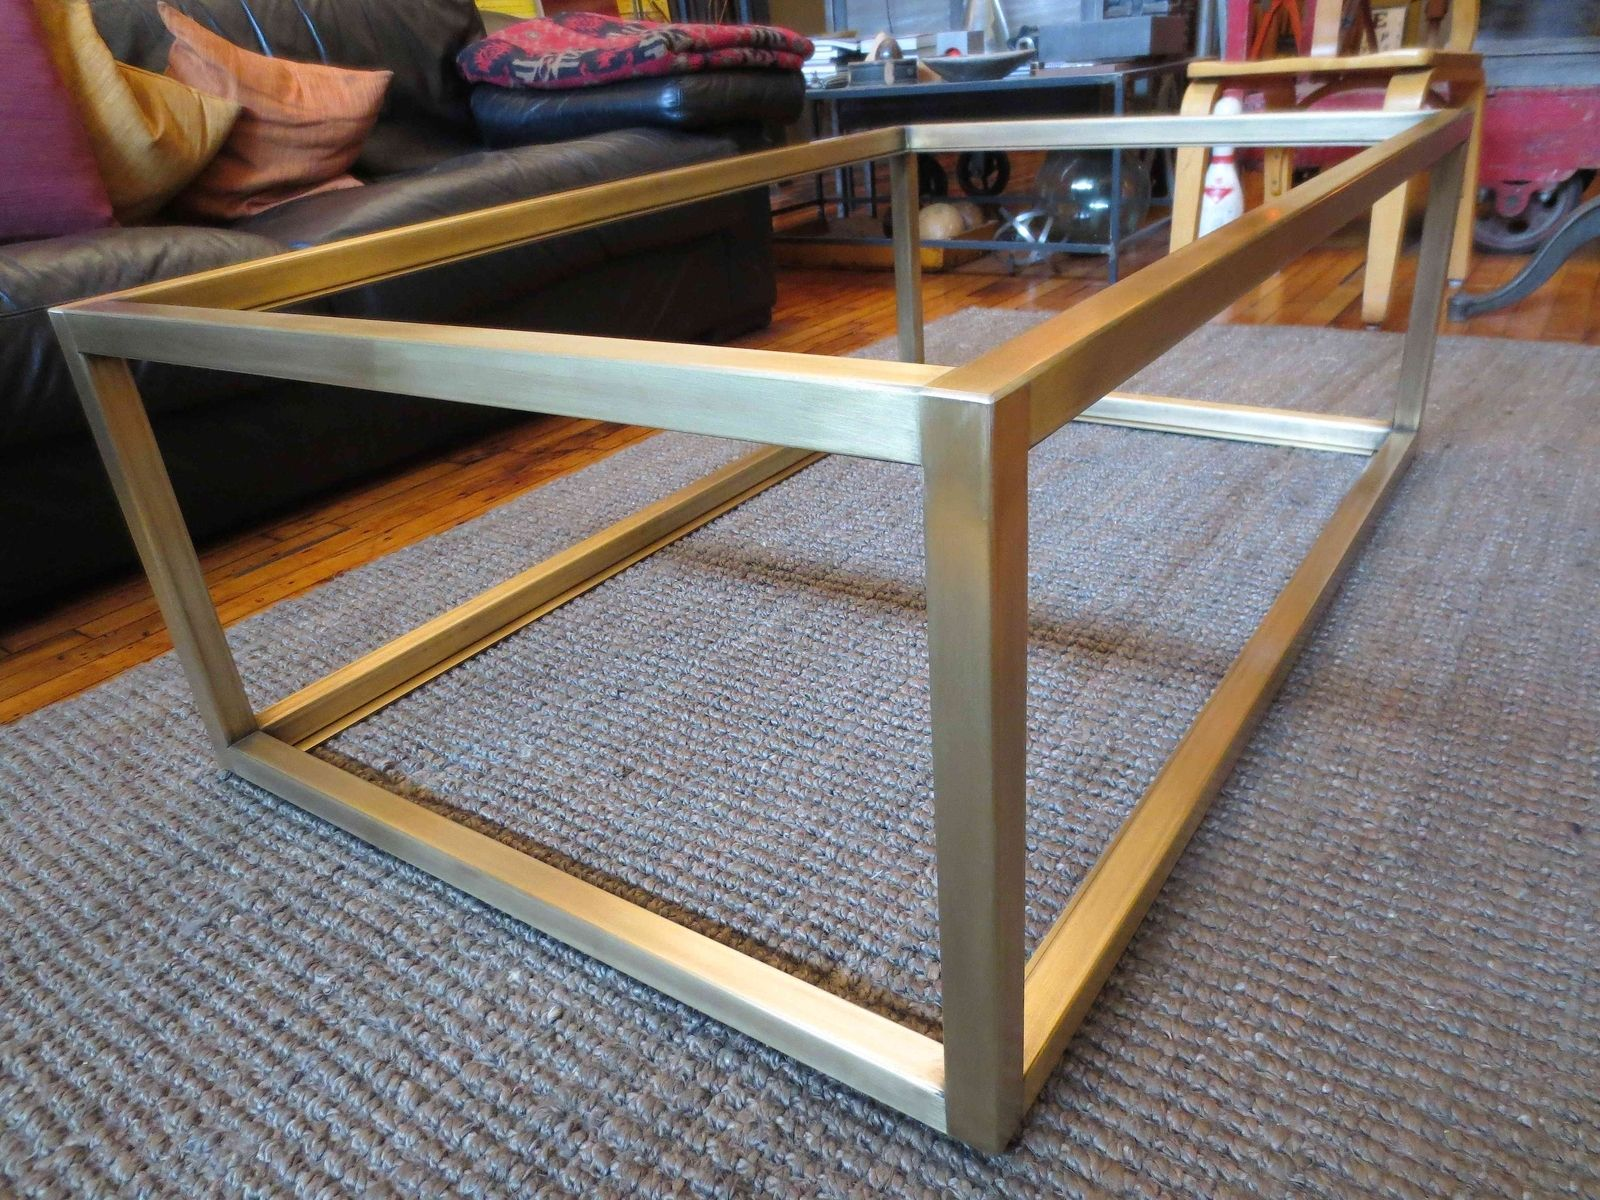 Custom Metal  Modern Coffee Table Base by Andrew Stansell Design |  CustomMade.com